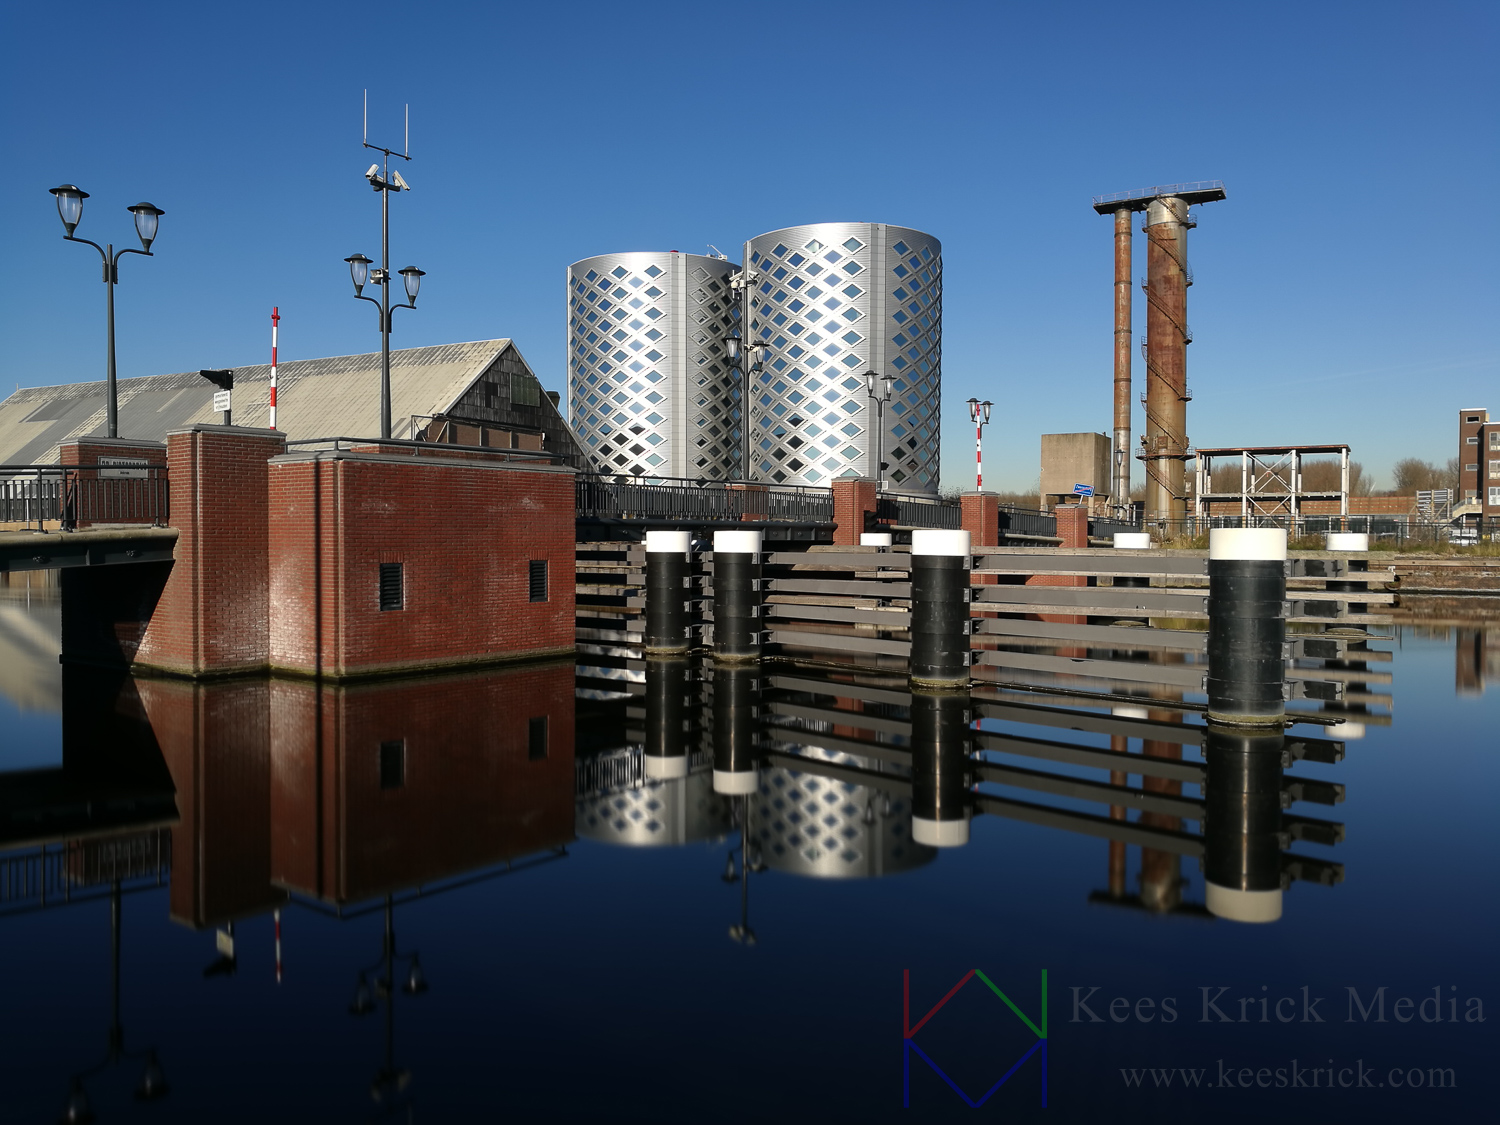 Kees Krick Media - workshop smartphone fotografie